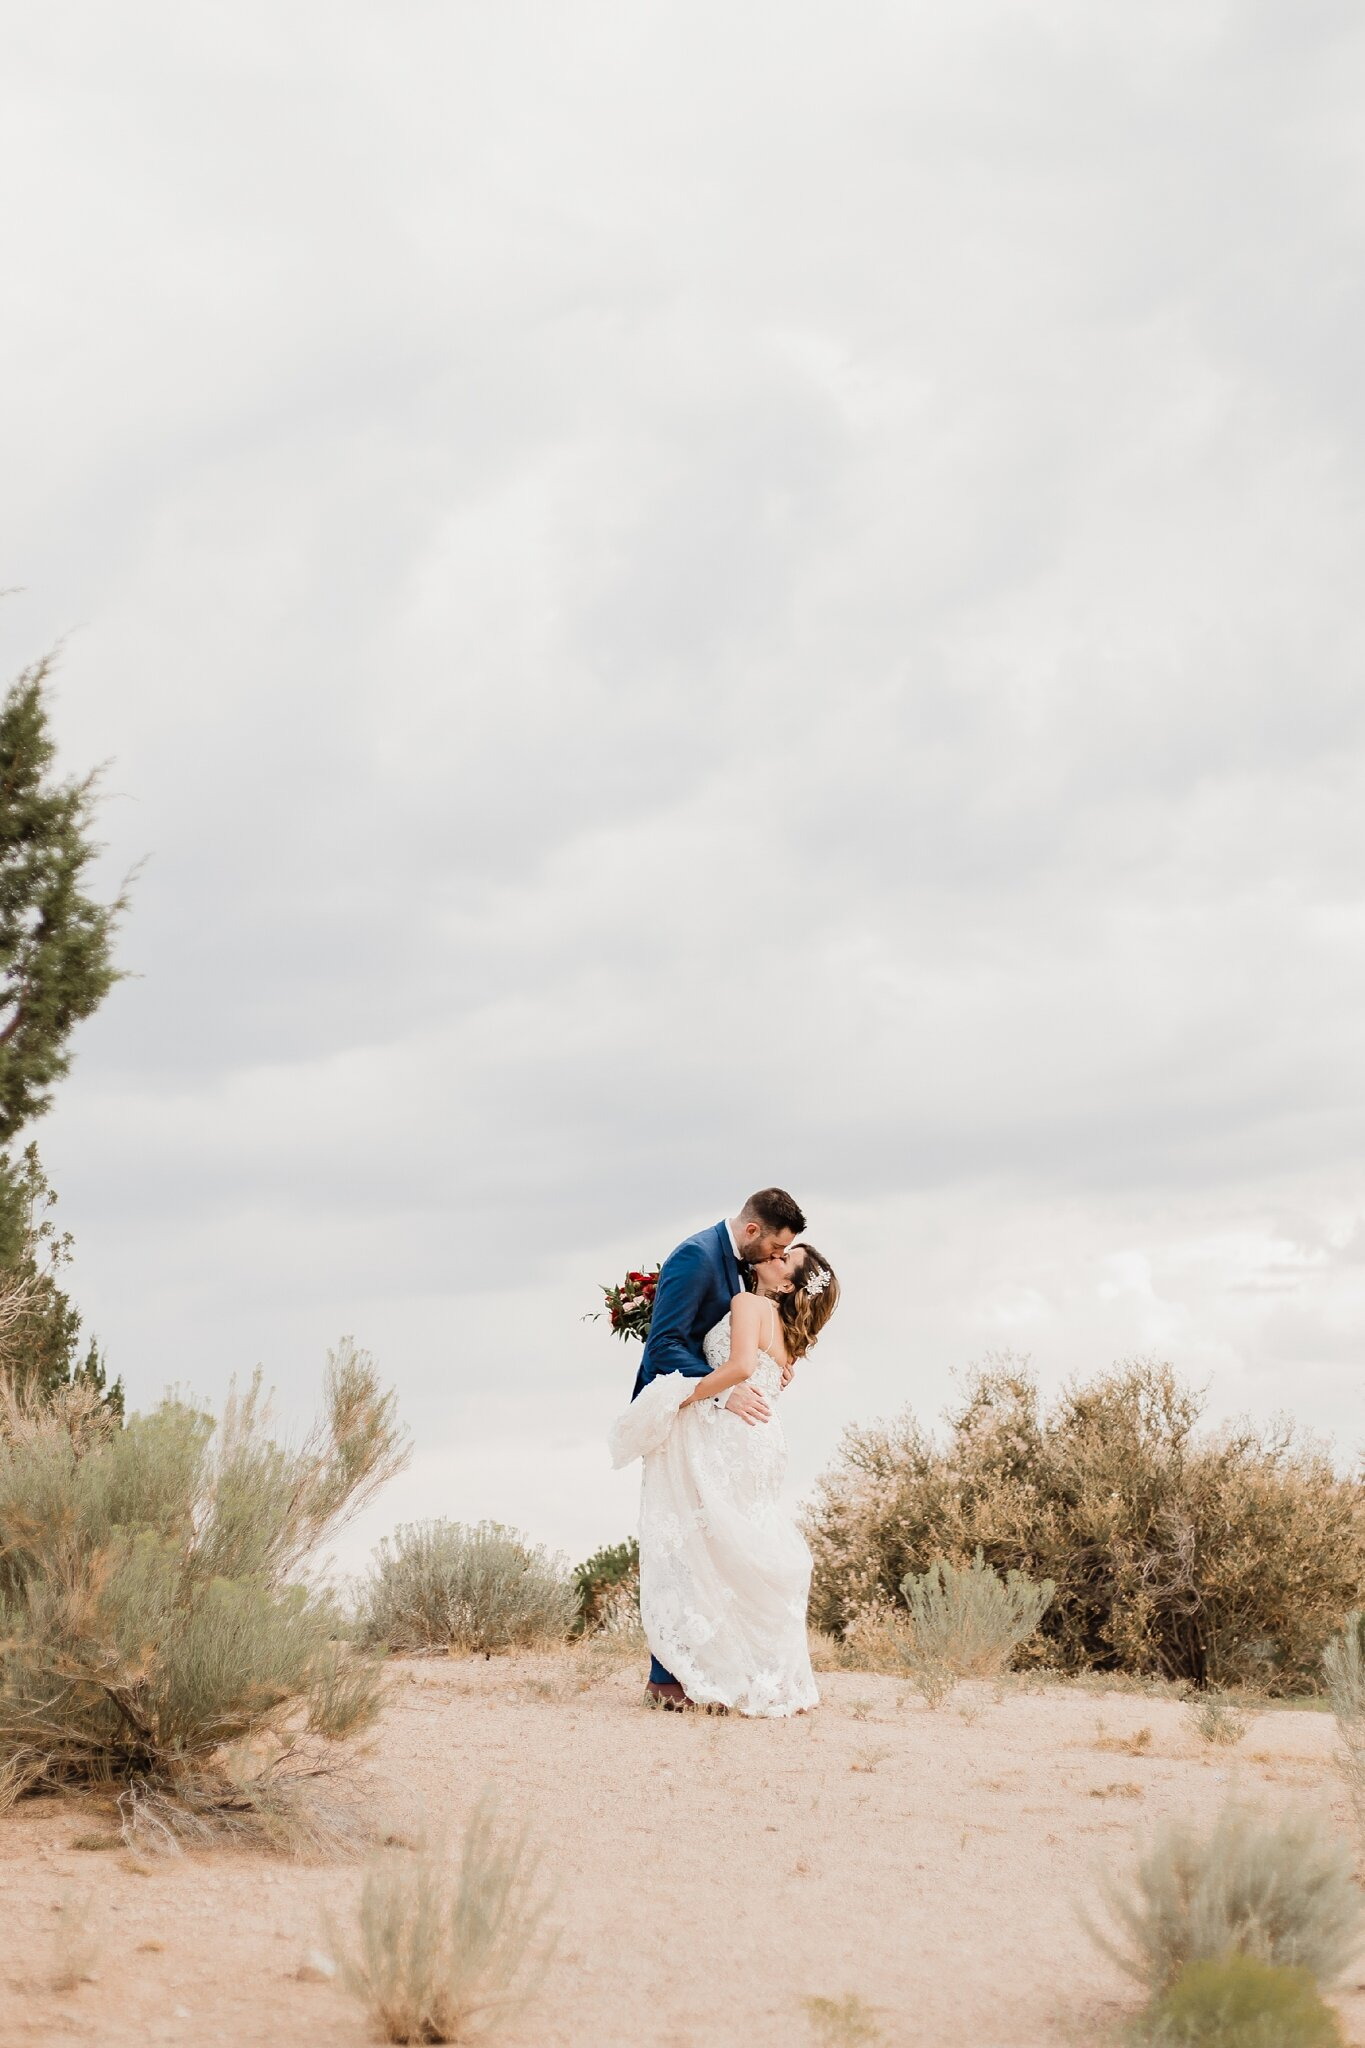 Alicia+lucia+photography+-+albuquerque+wedding+photographer+-+santa+fe+wedding+photography+-+new+mexico+wedding+photographer+-+new+mexico+wedding+-+albuquerque+wedding+-+sandia+wedding+-+sandia+event+center+wedding_0072.jpg